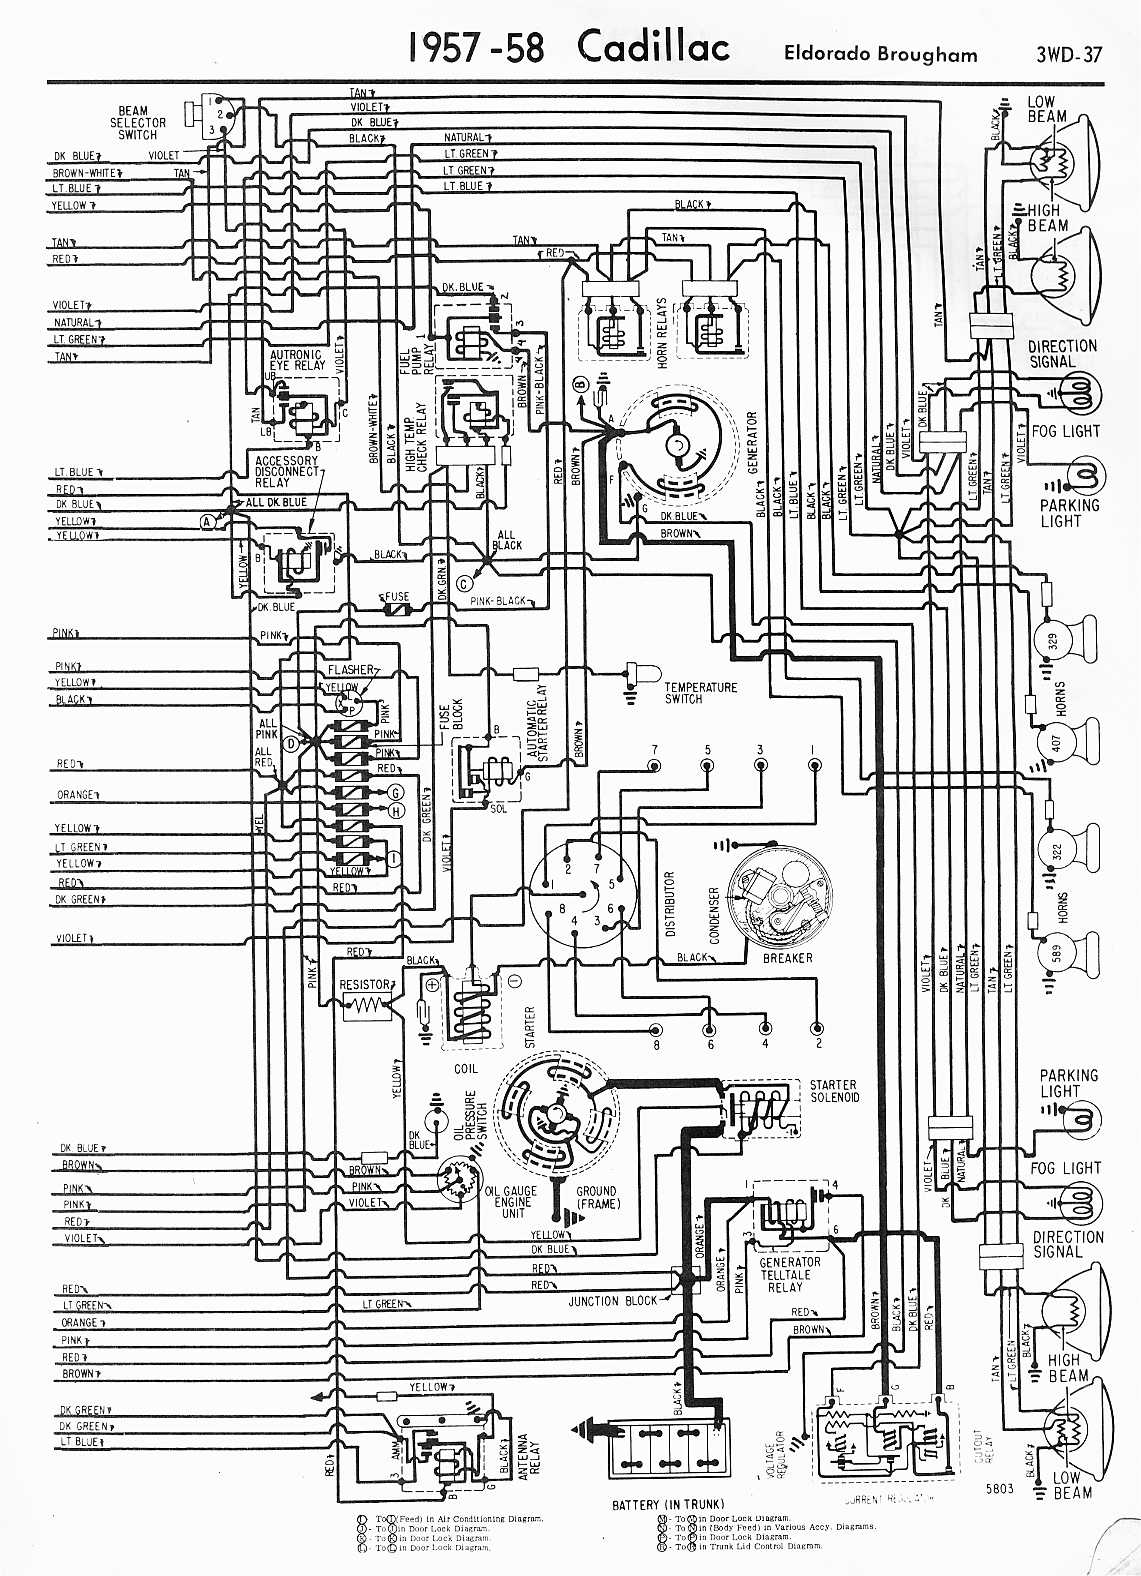 MWireCadi65_3WD 037 cadillac wiring diagrams 1957 1965 Ford Alternator Wiring Diagram at reclaimingppi.co